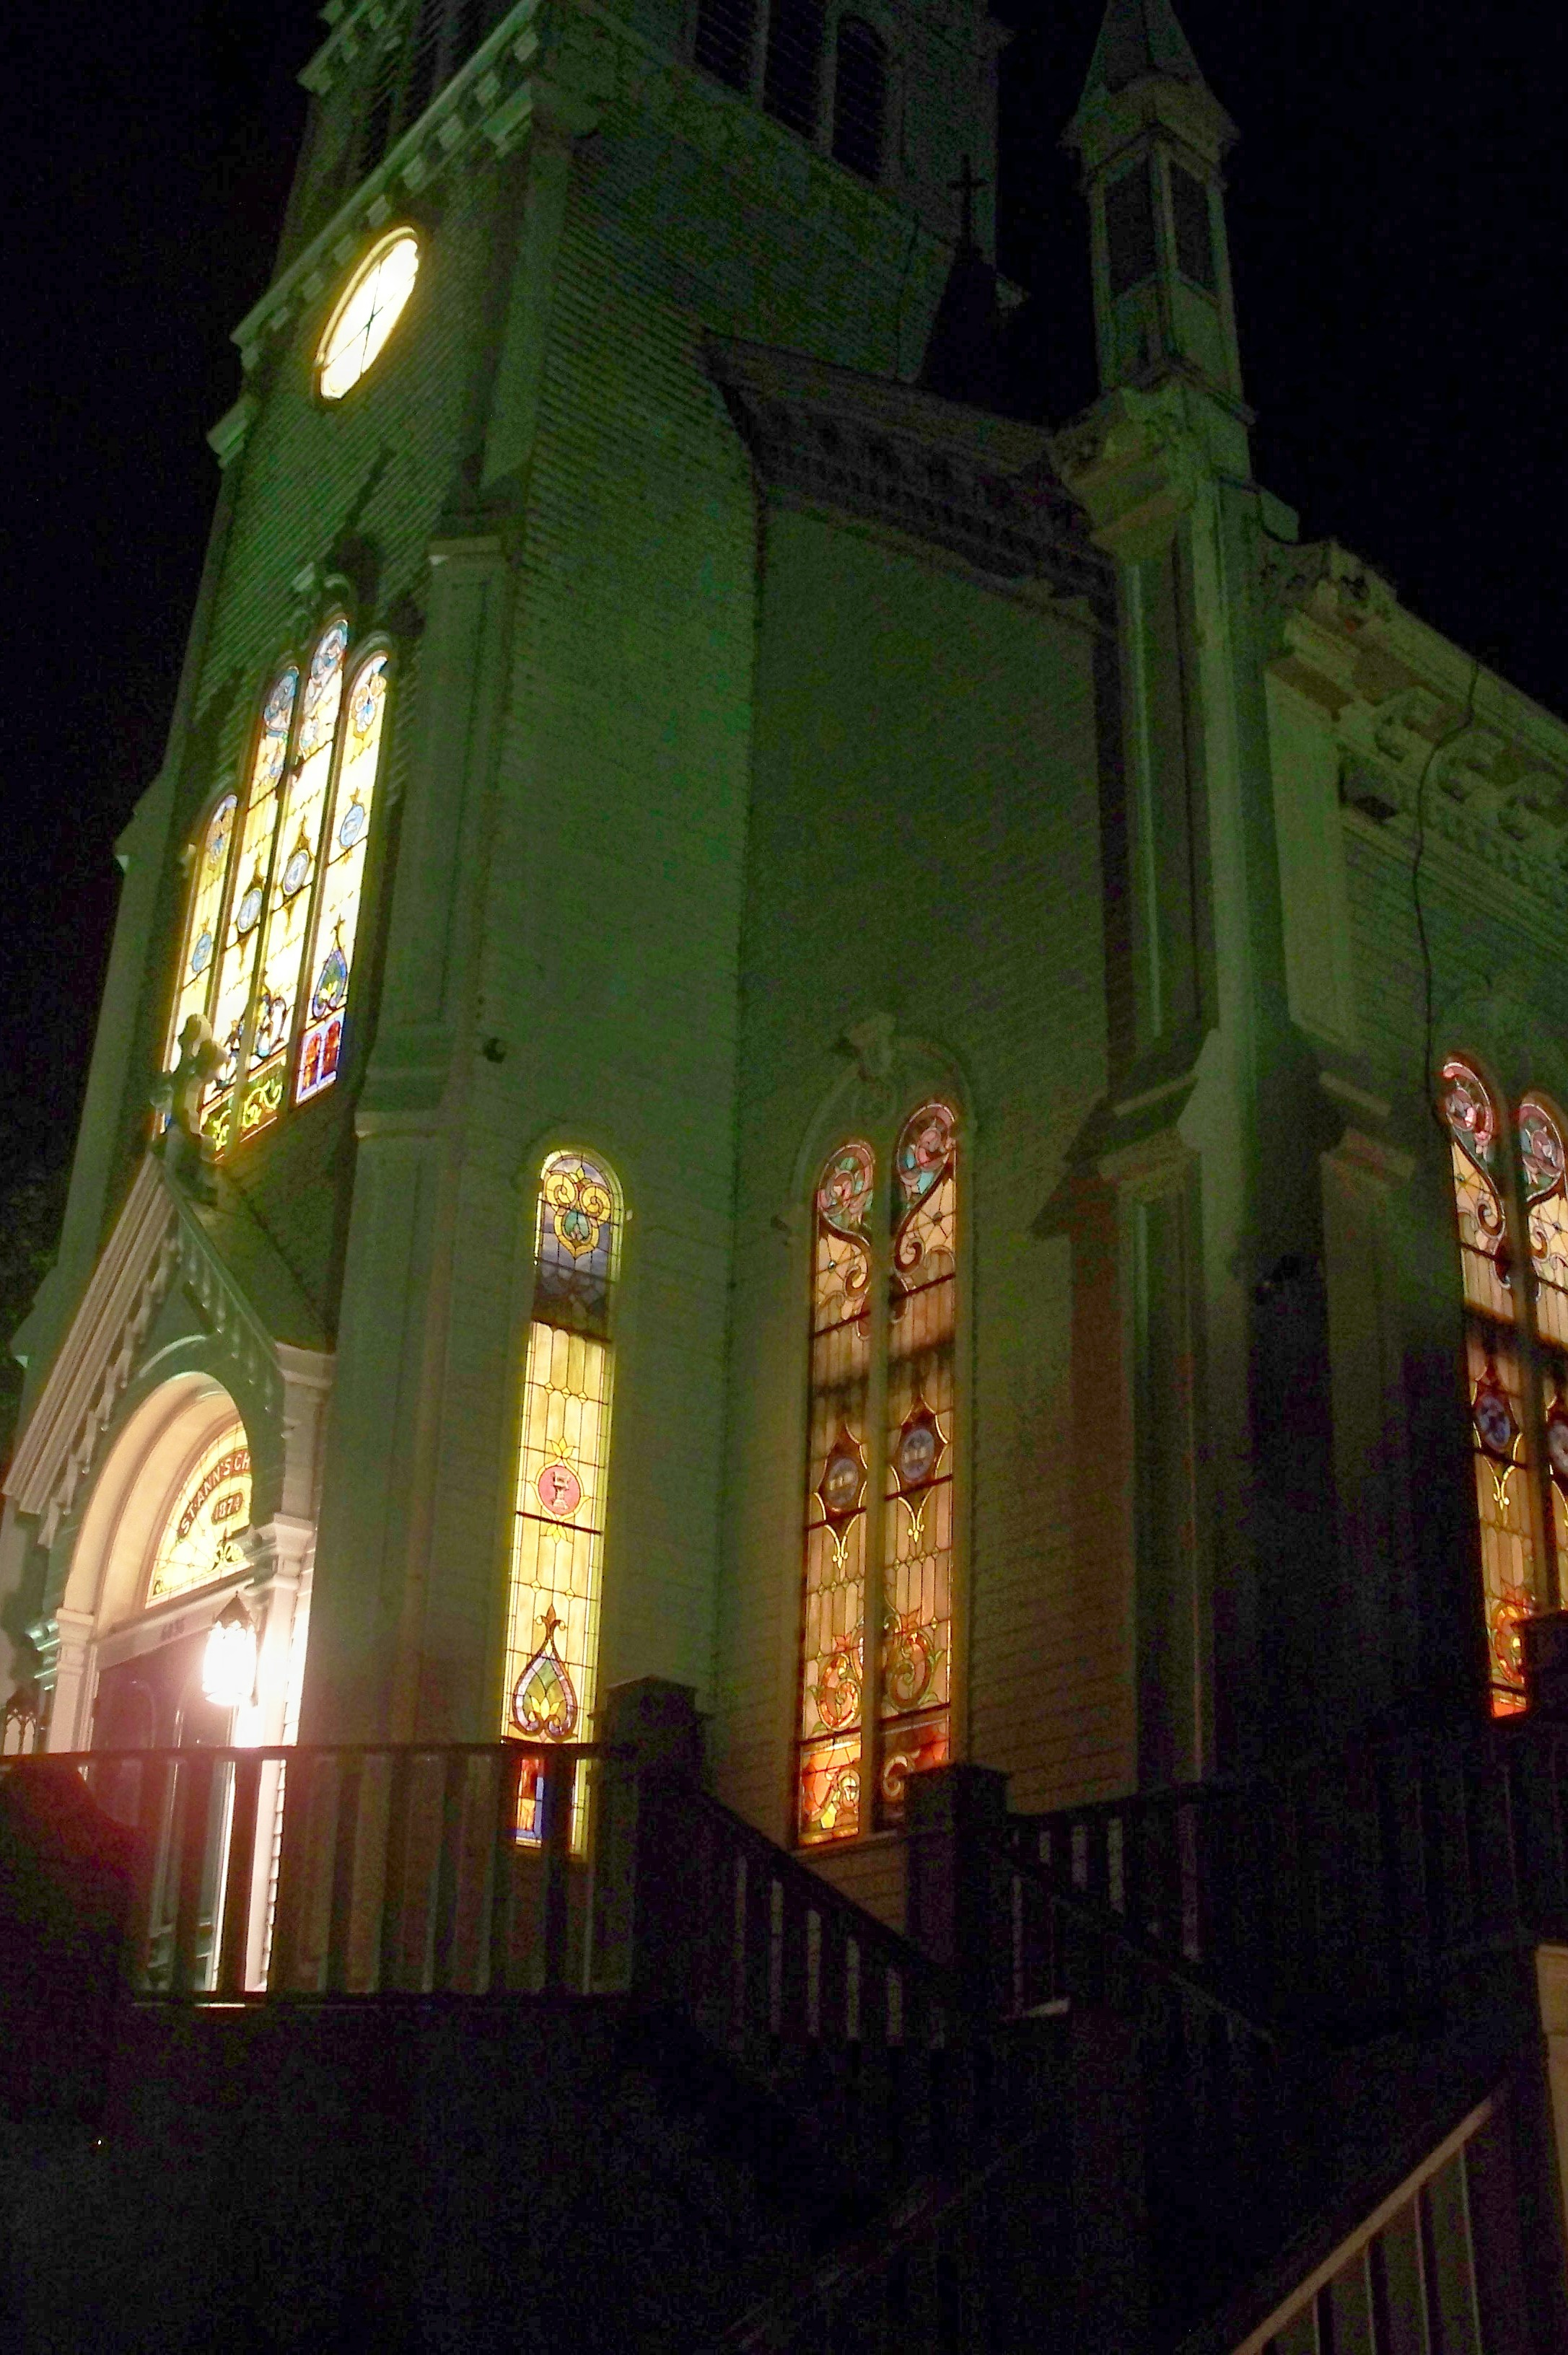 St. Anne's Church by night. The stained glass windows include an eye in a pyramid.